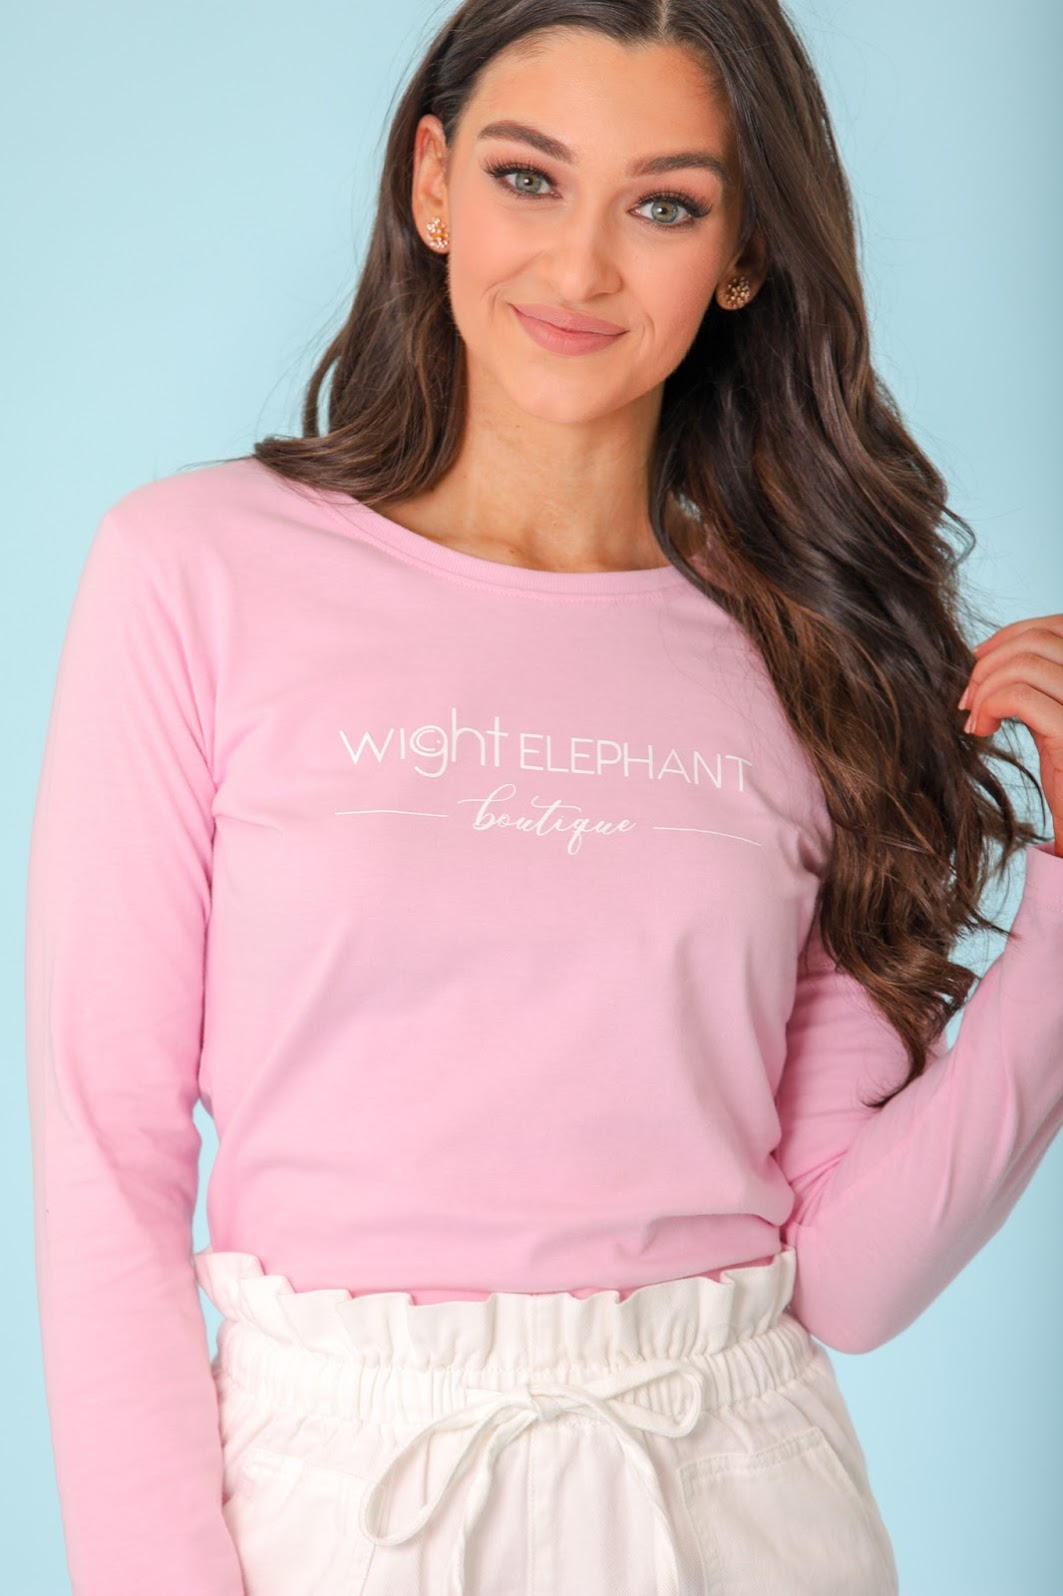 Long Sleeve Wight Elephant Tee - Pink